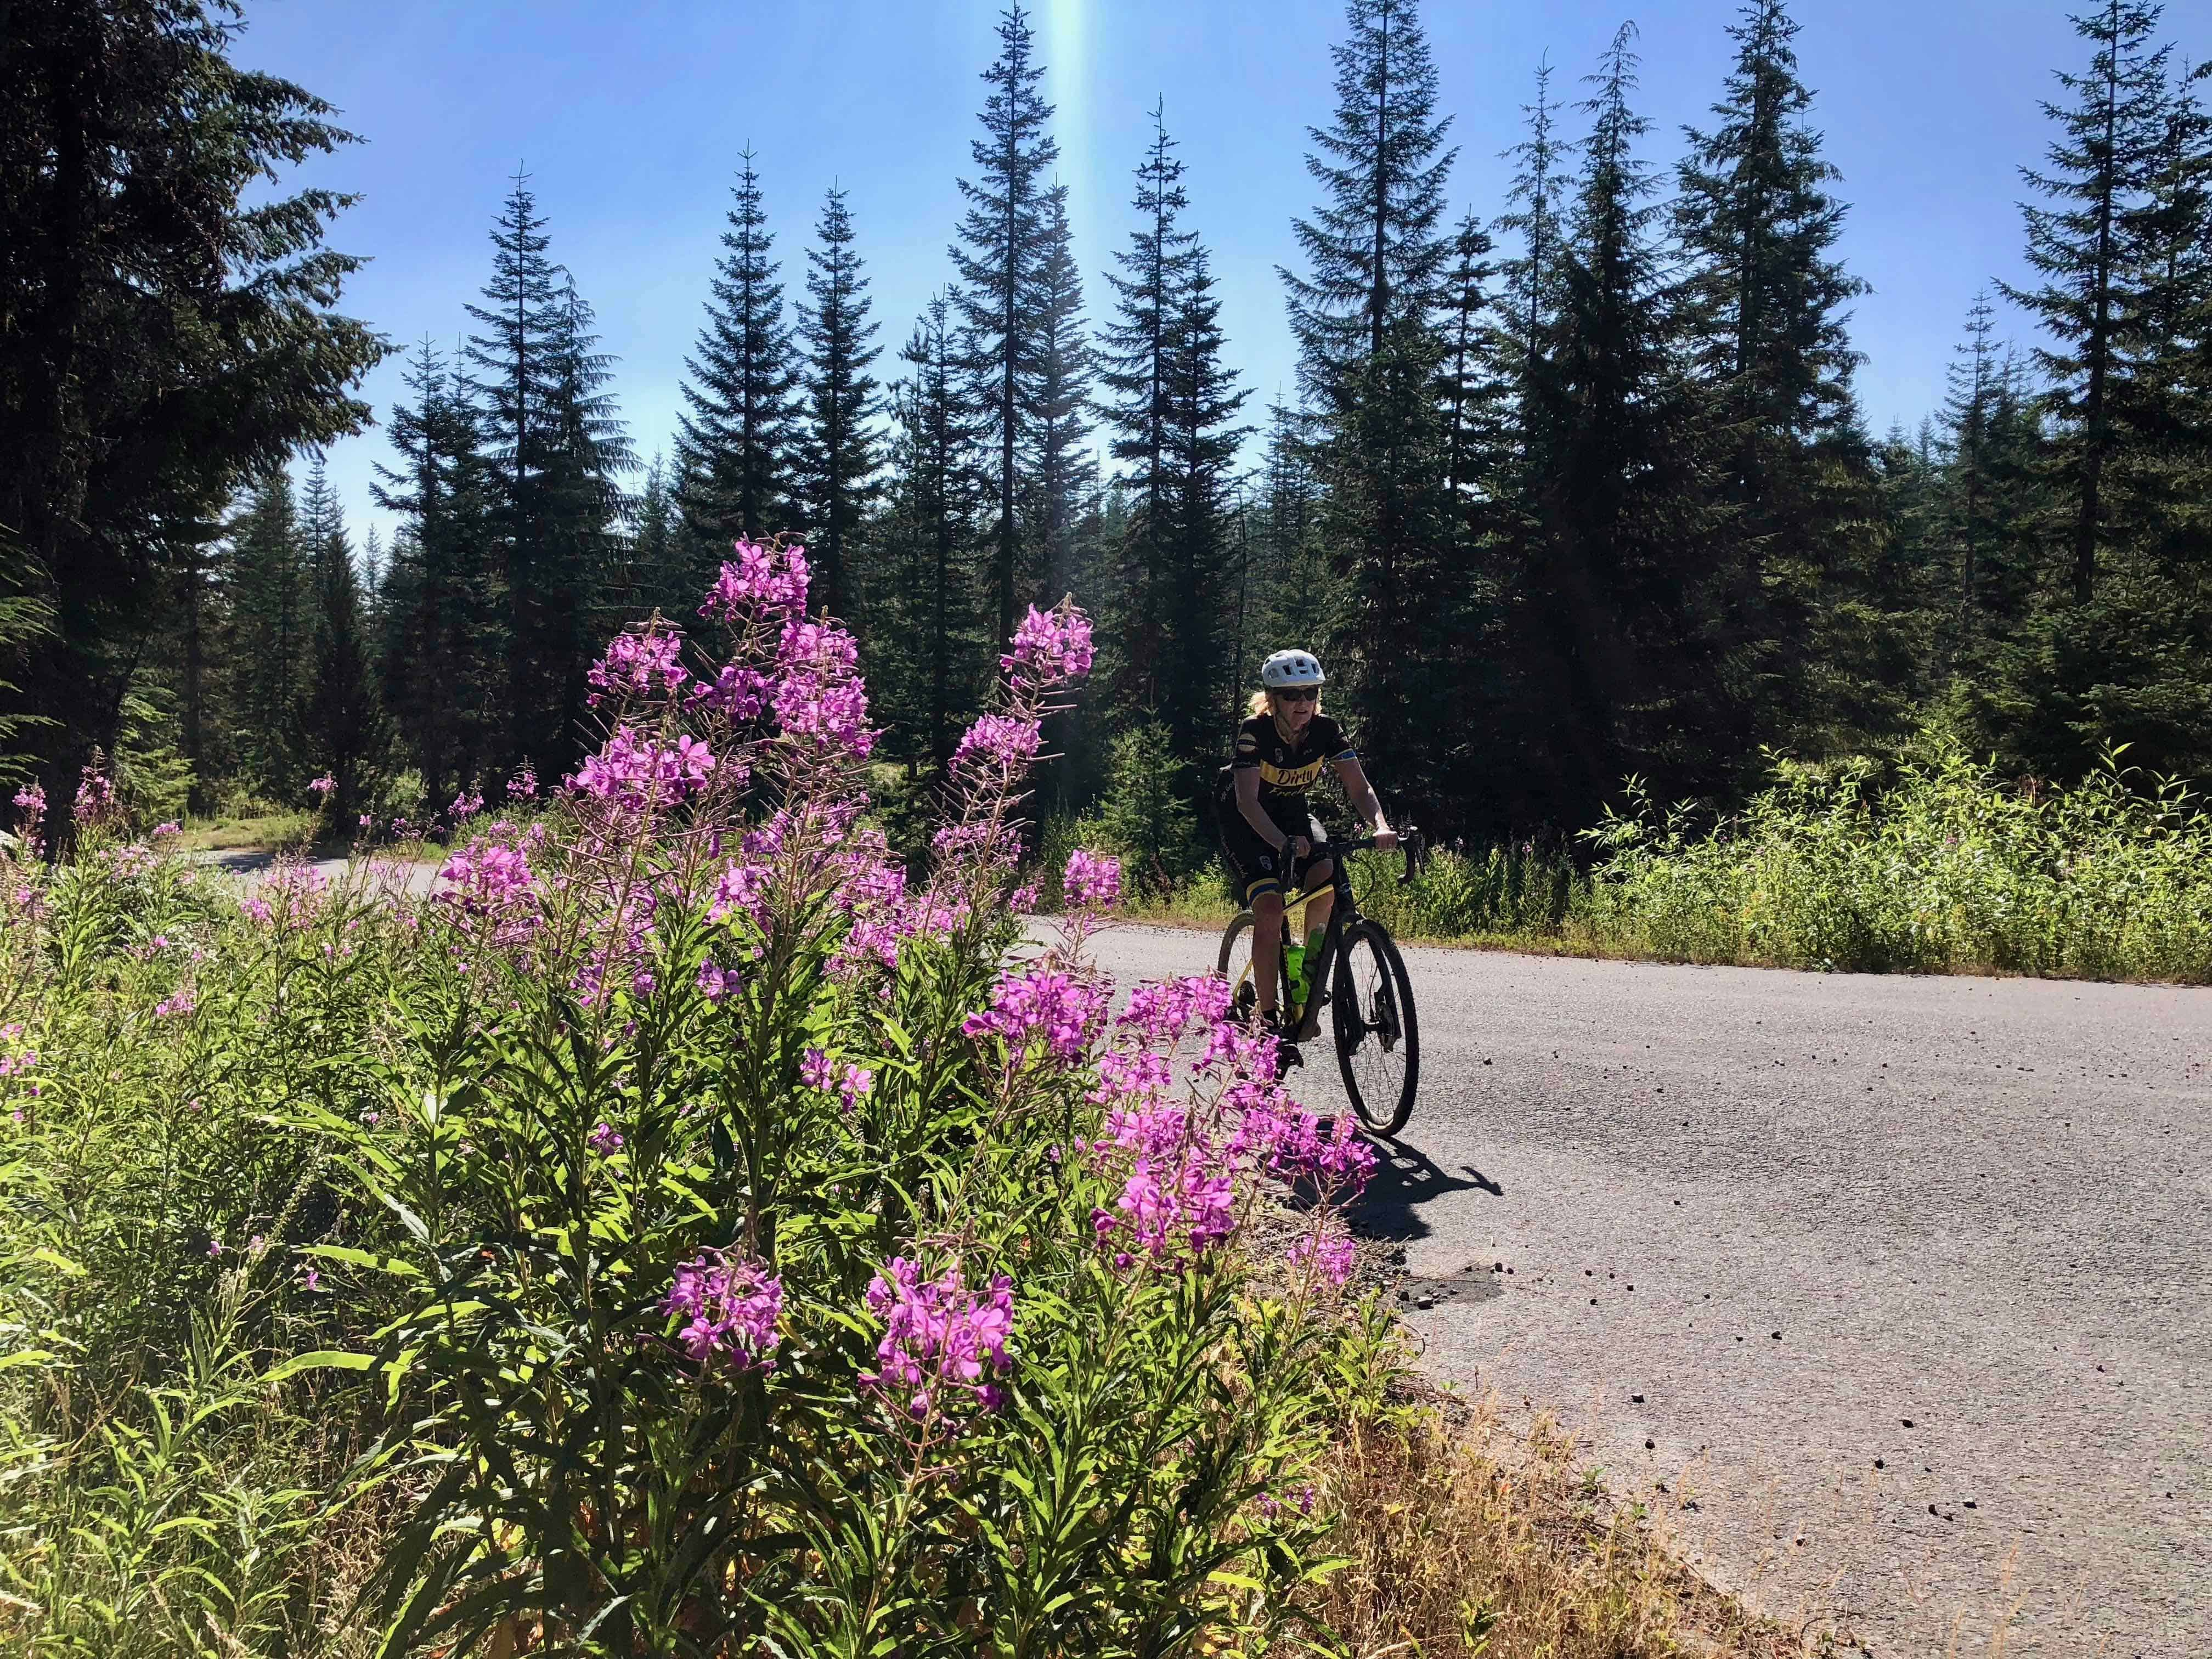 Cyclist on Forest Road 11, Willamette National Forest